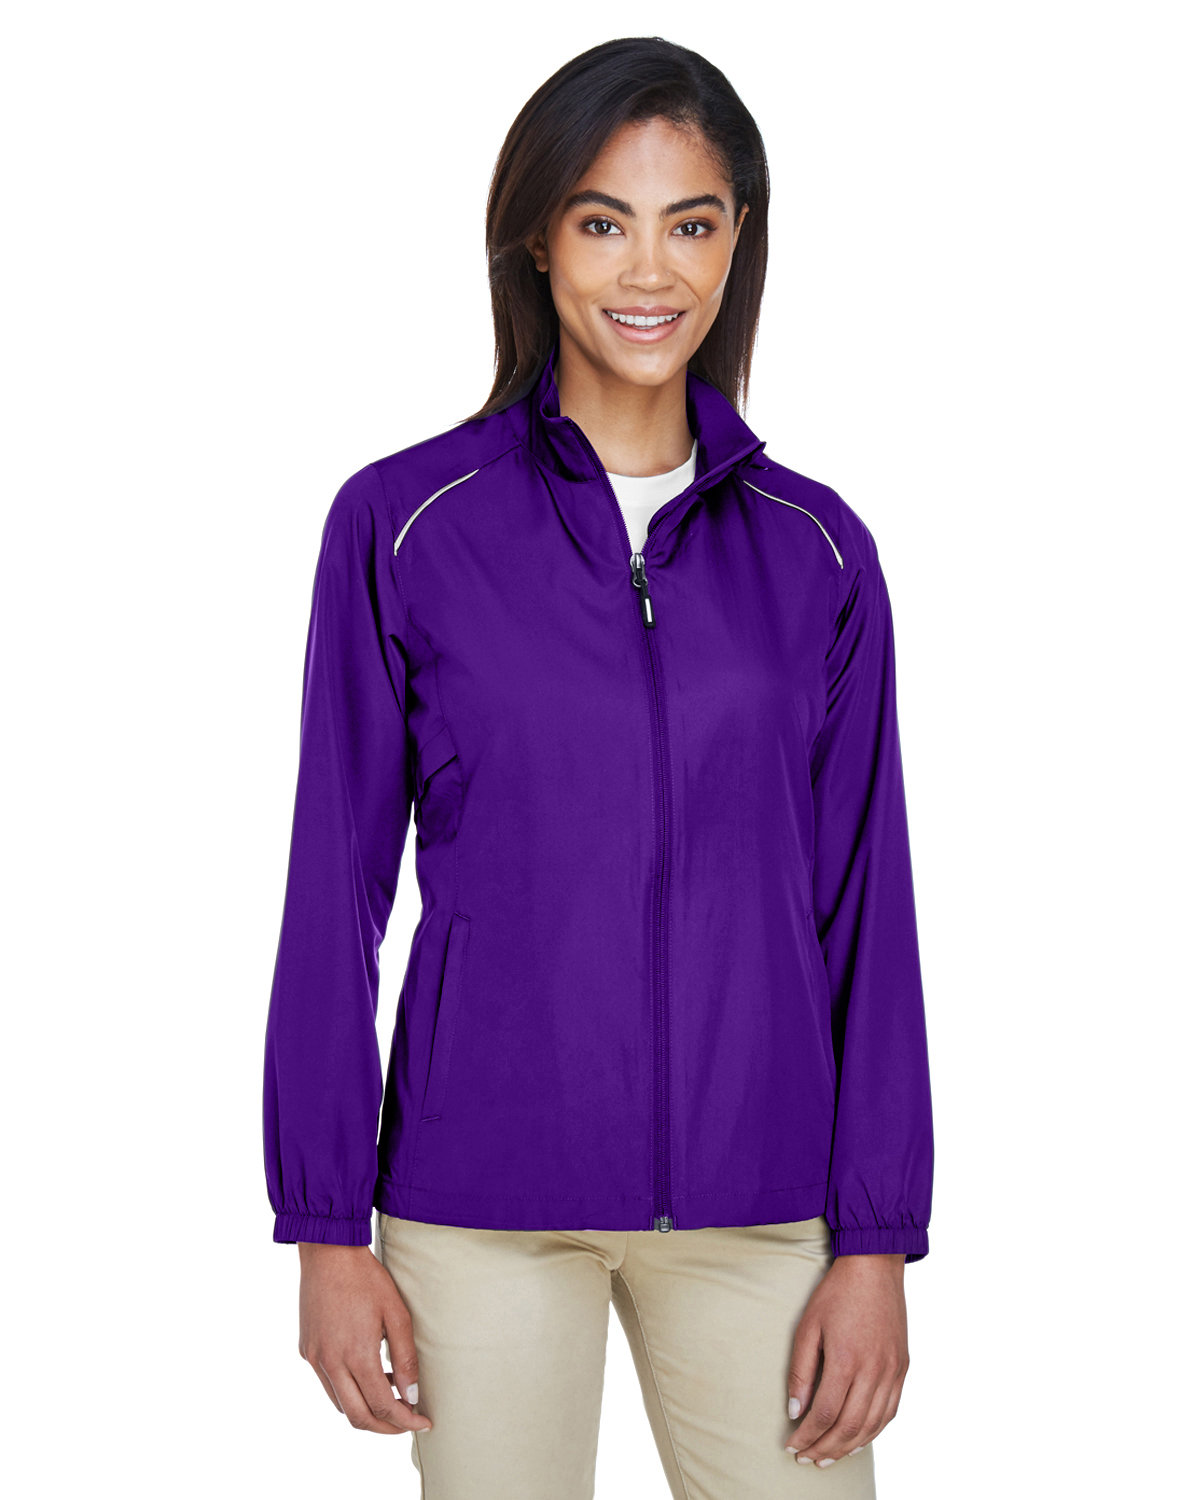 Core 365 Ladies' Motivate Unlined Lightweight Jacket CAMPUS PURPLE